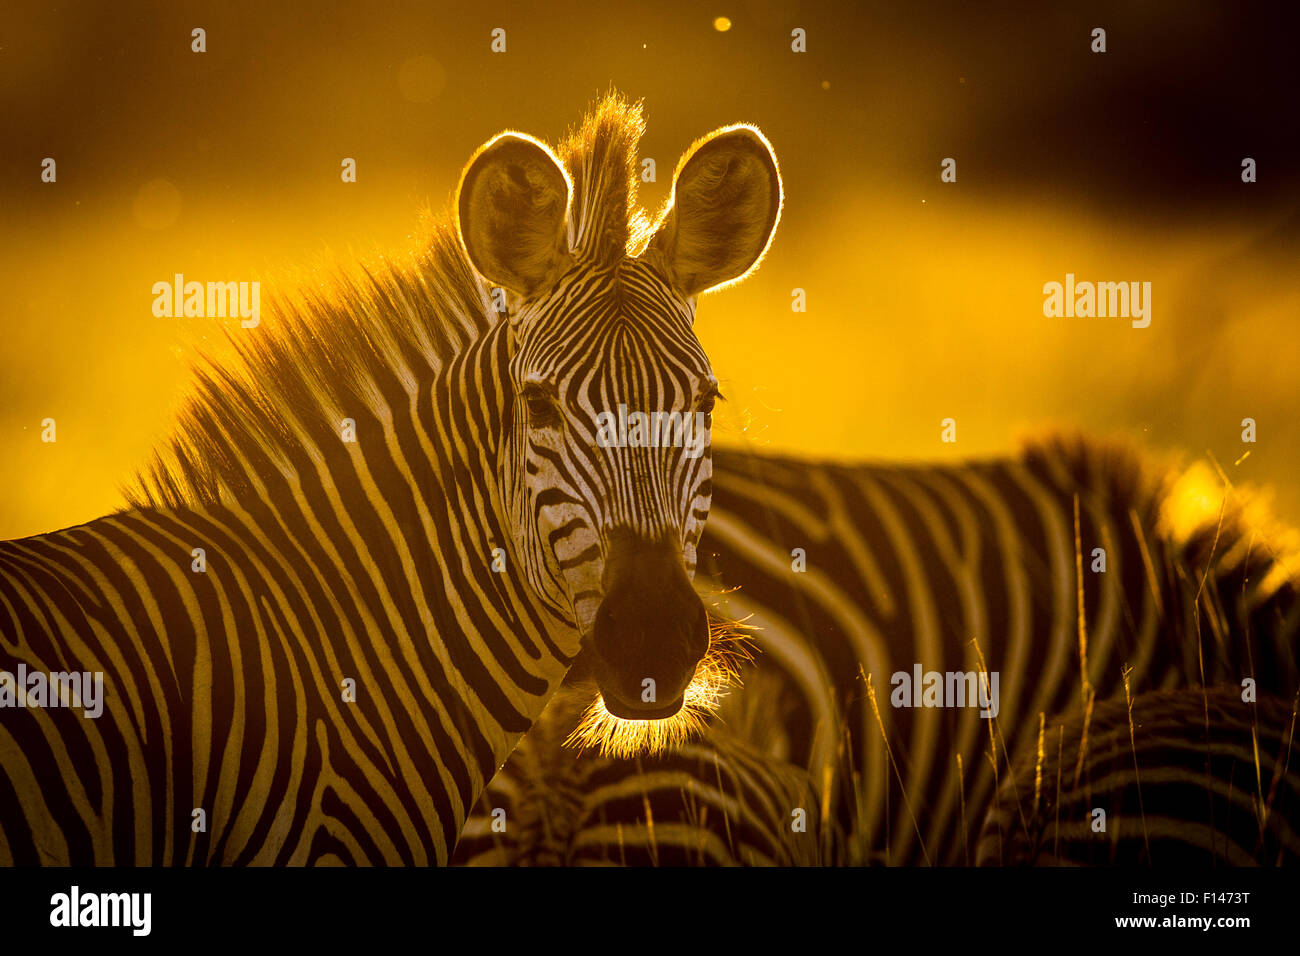 Crawshay's zebra (Equus quagga crawshayi) in evening light, South Luangwa National Park, Zambia. March. - Stock Image